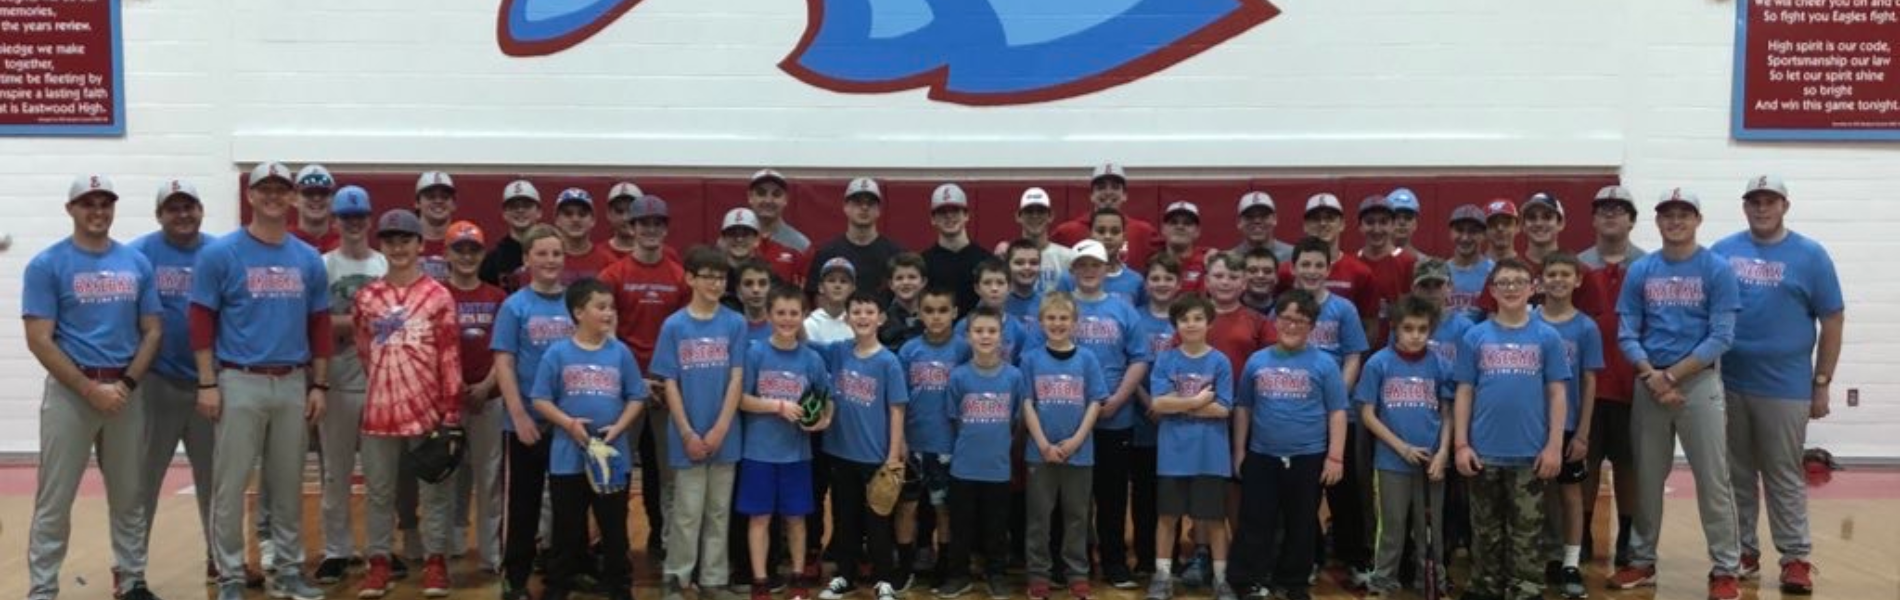 EHS Baseball Camp 2019-20